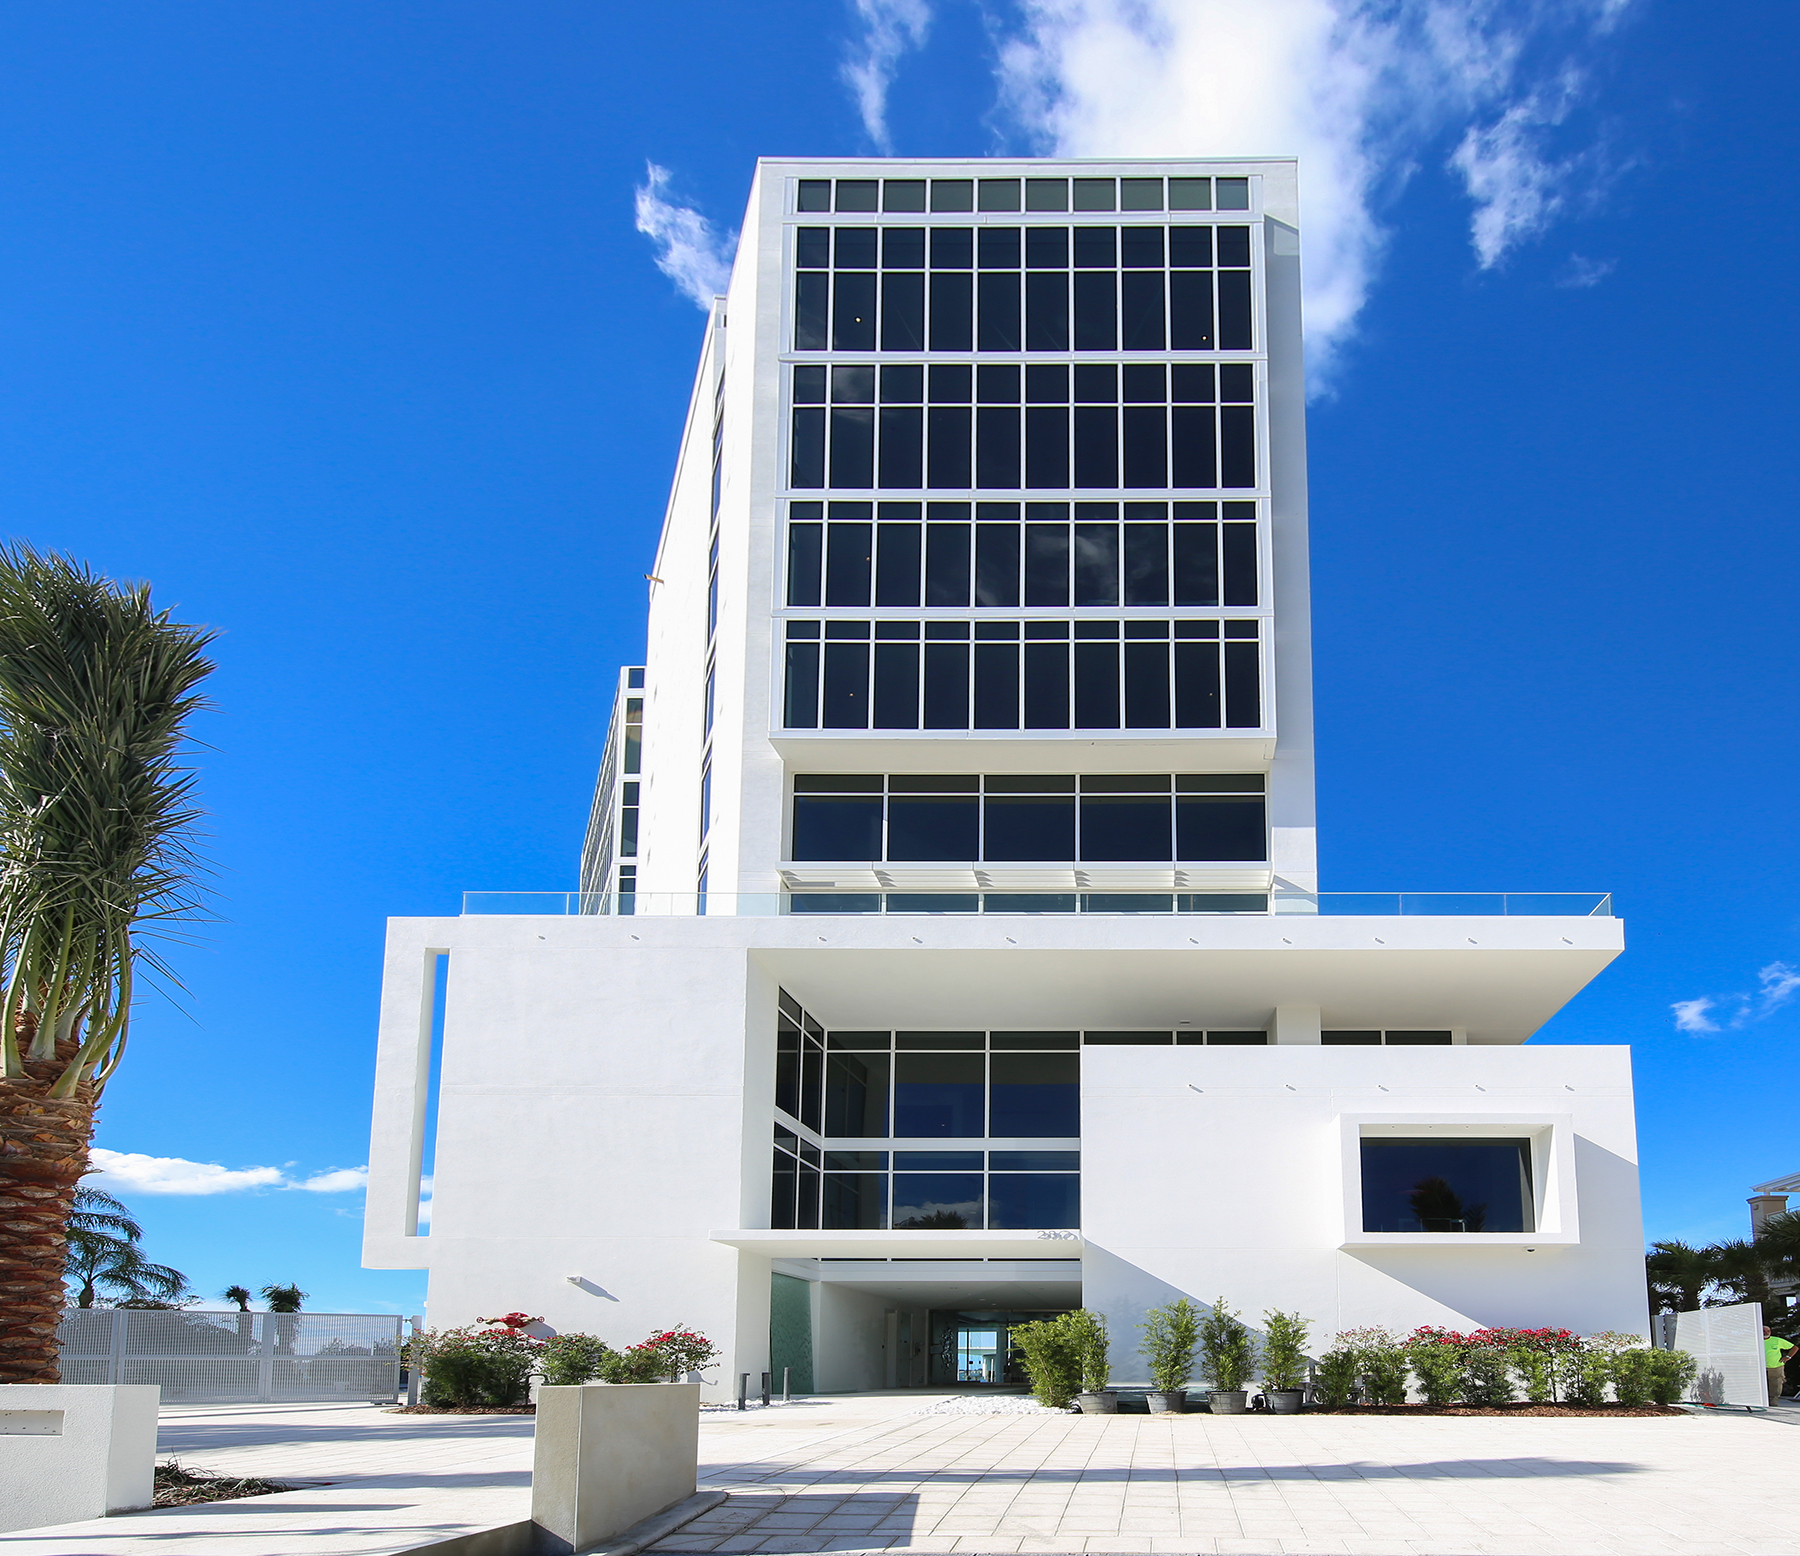 Condominium for Sale at AQUA 280 Golden Gate Pt Grand Resid, Sarasota, Florida 34236 United States